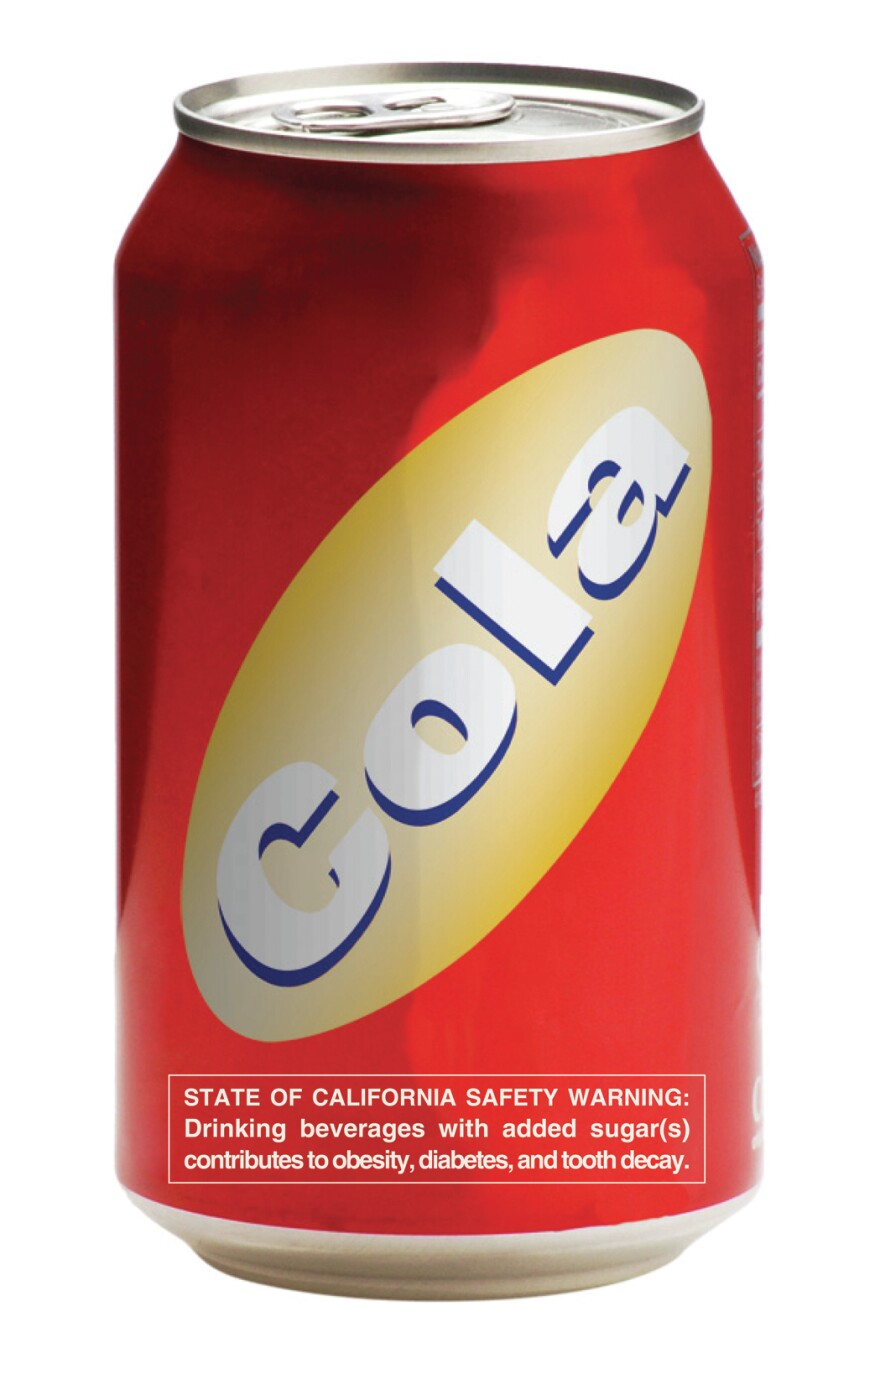 A mock-up of a warning label for sodas and sugary drinks proposed in California by public health advocates.